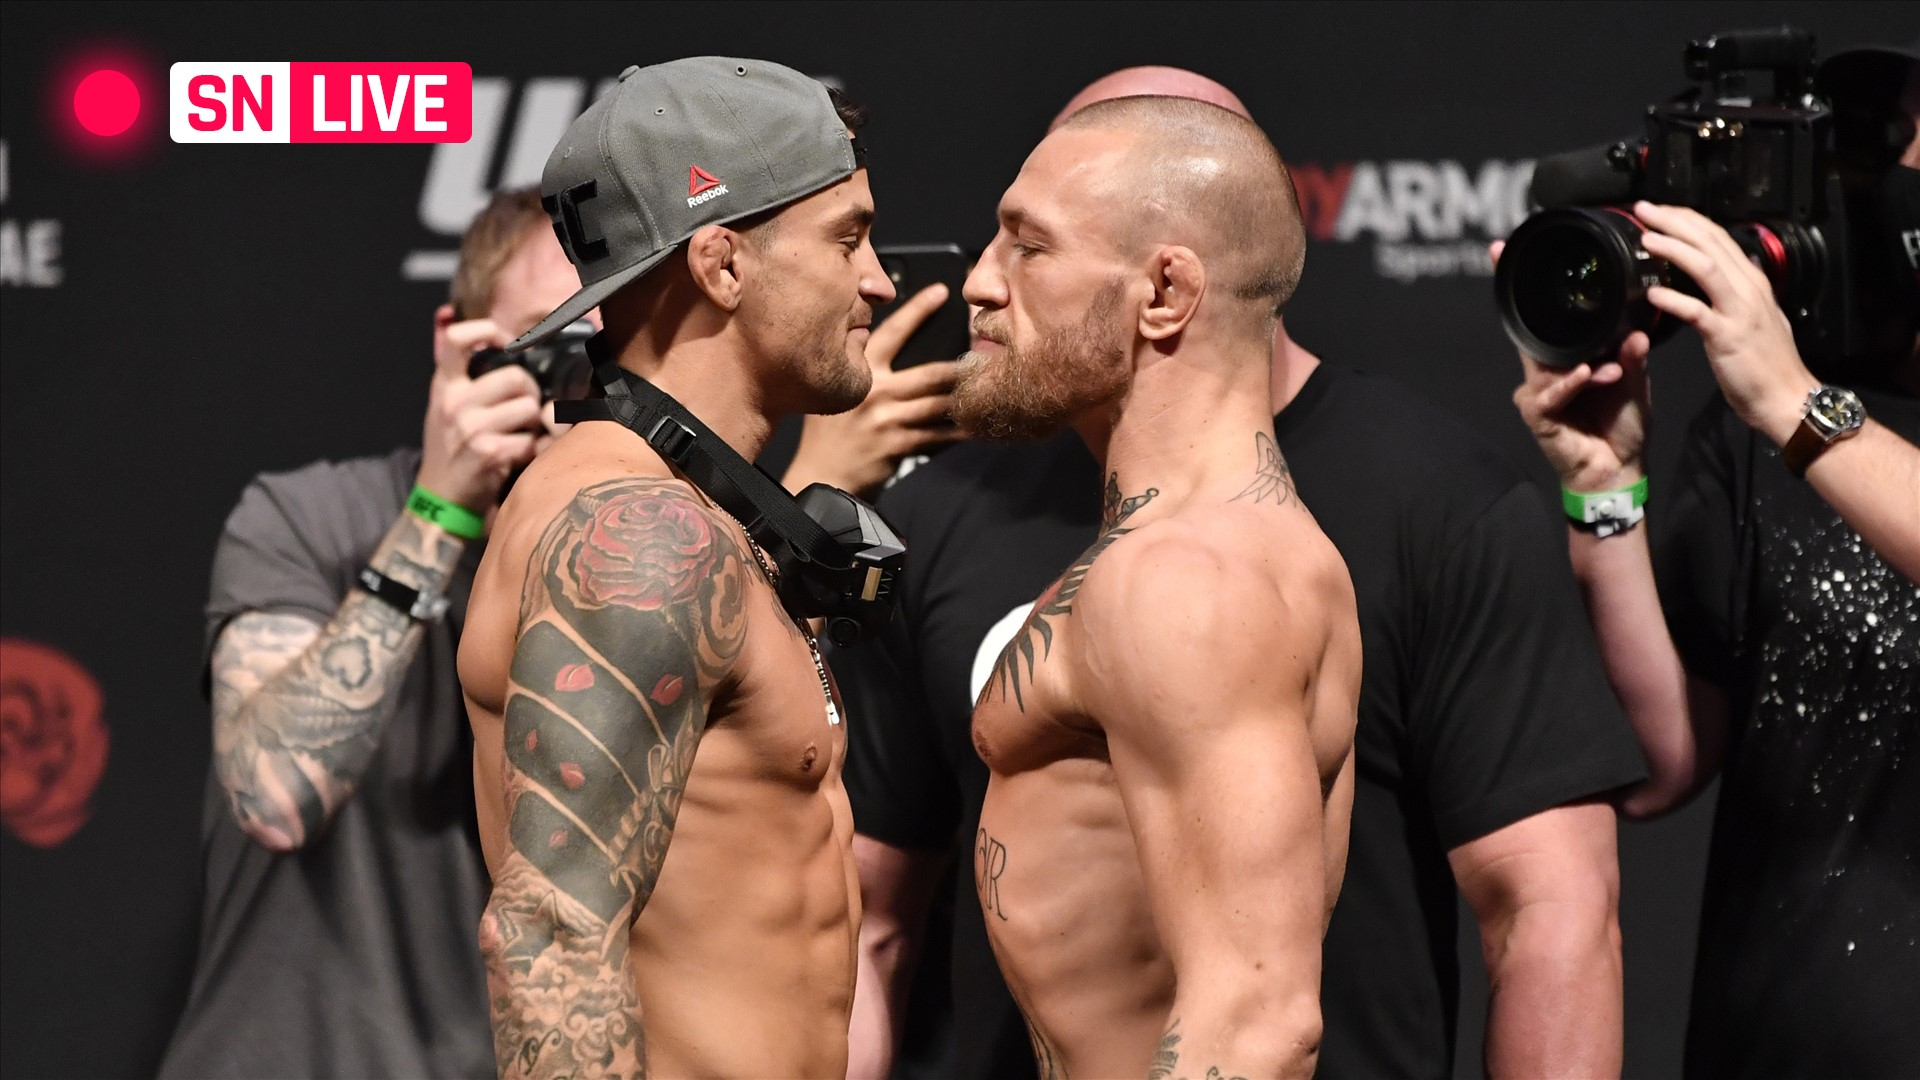 Conor McGregor vs. Dustin Poirier 2 live fight updates, results, highlights from UFC 257 - sporting news